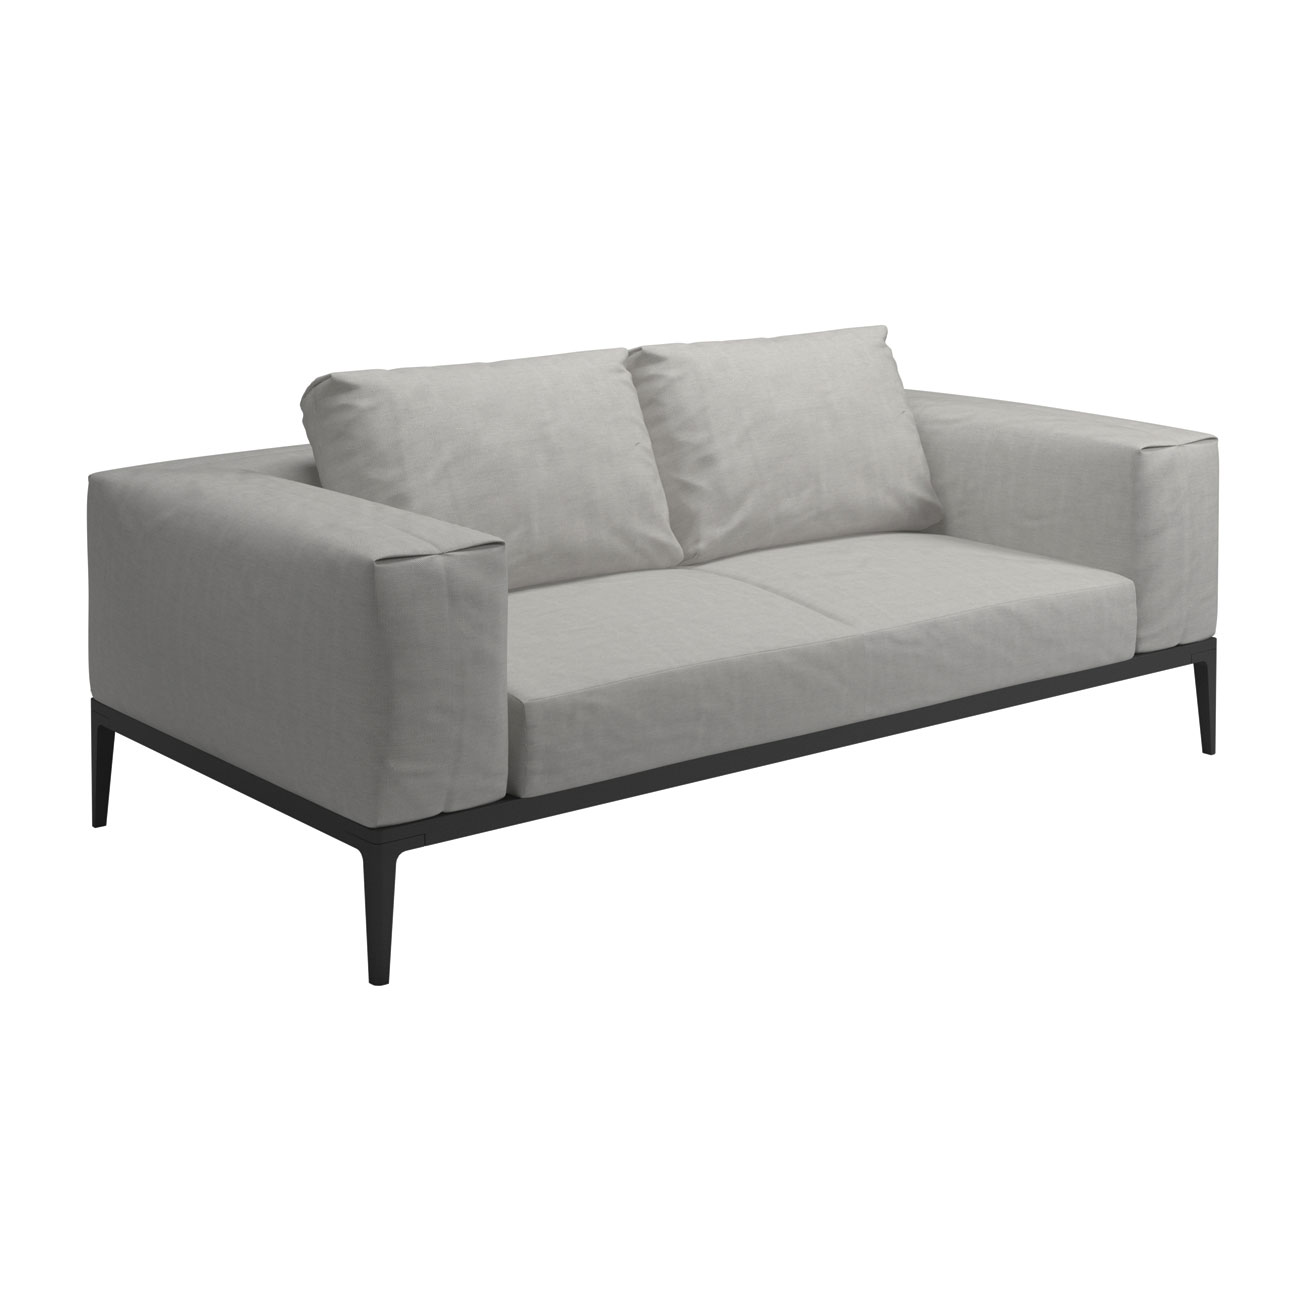 Gloster grid modular sofa sofa unit luxury outdoor living for Sofa modular gris